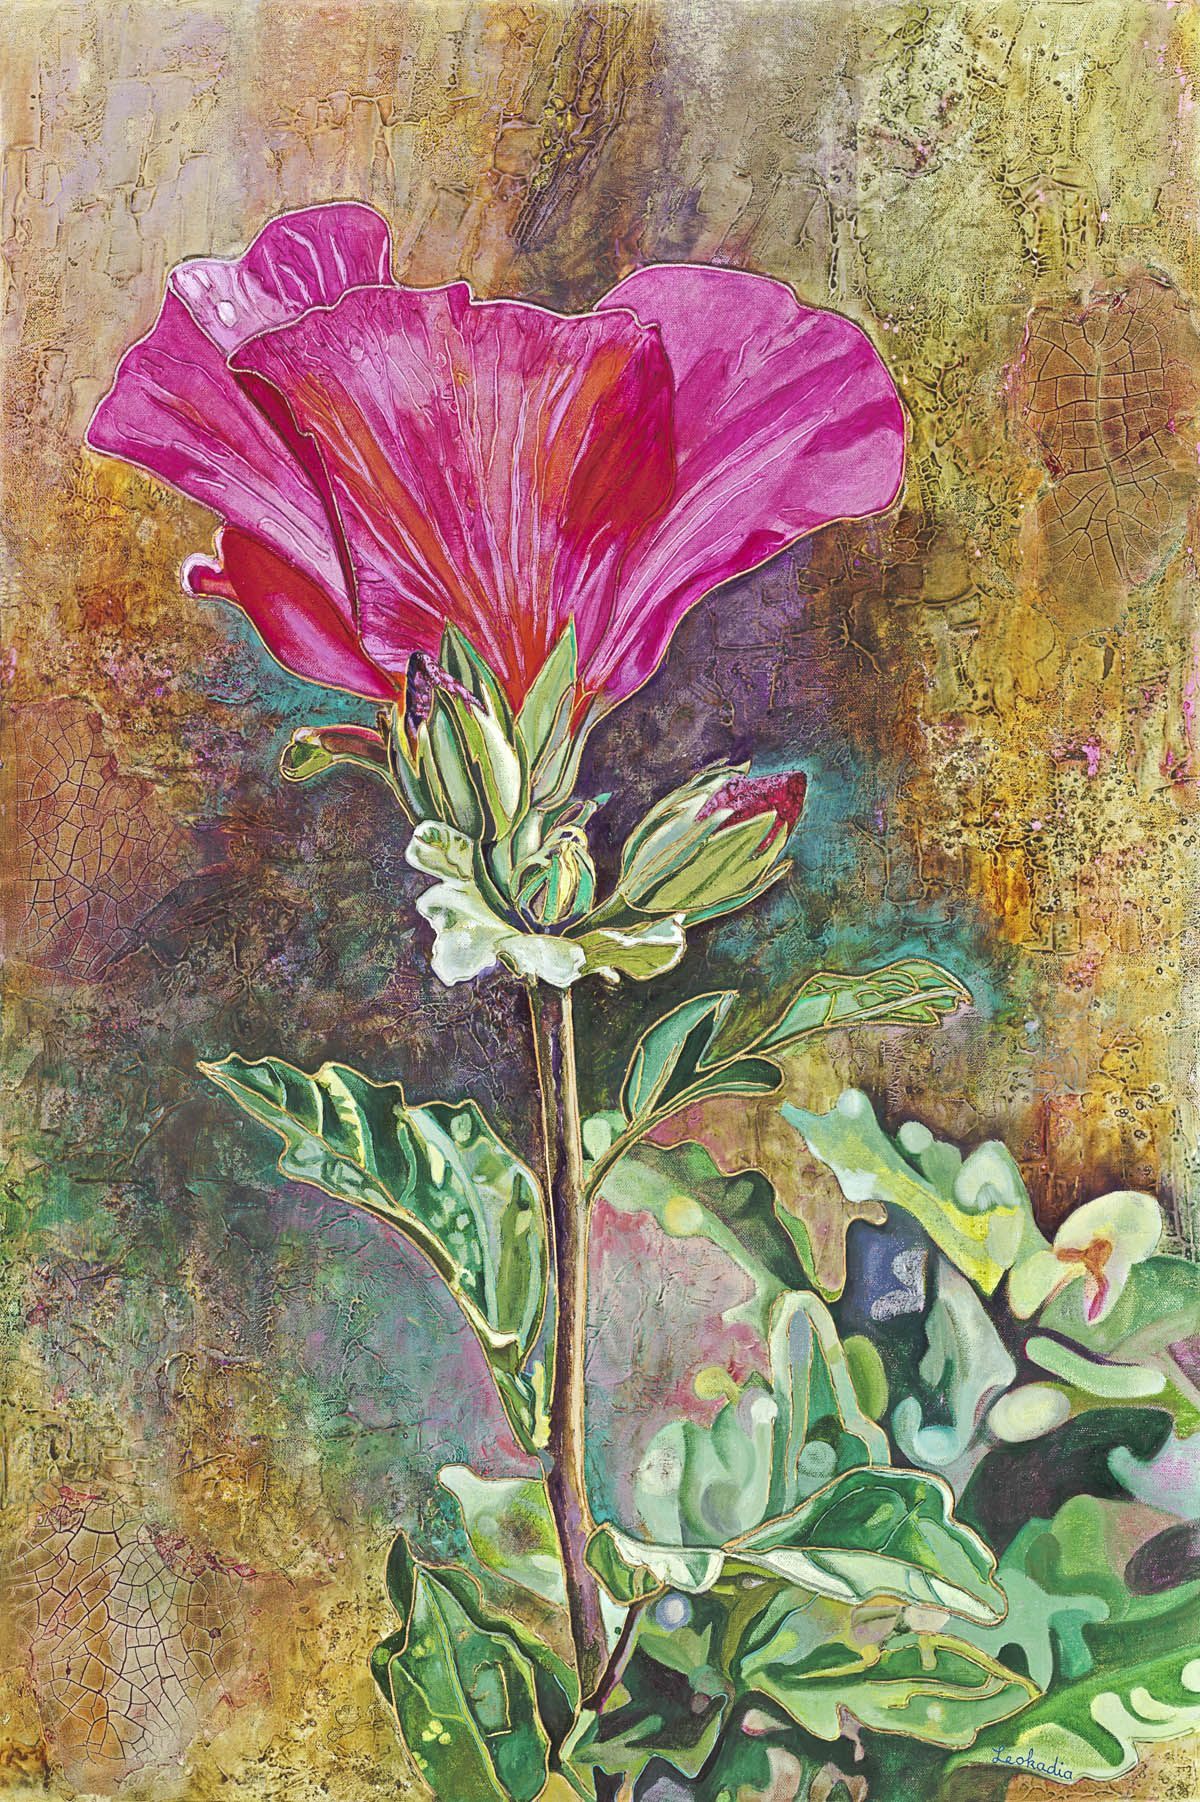 Rose of Sharon - My Redeemer: I know that my Redeemer lives, and that in the end he will stand on the earth… How my heart yearns! Job 19:25, 27 #home #decor #art #christian #god #Rose #Sharon #Flower #painting